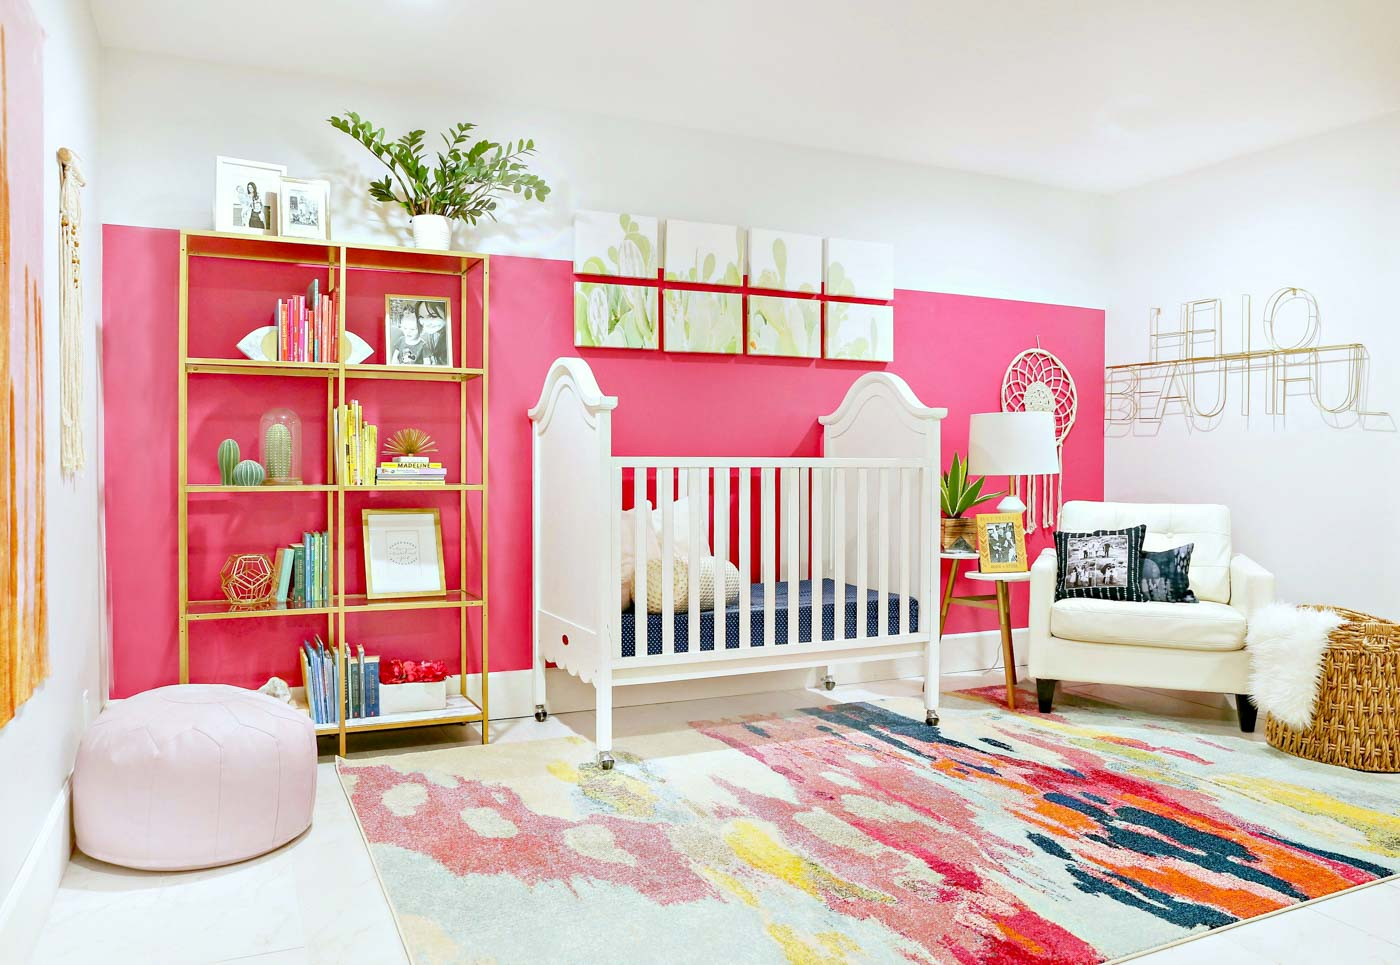 With My Daughter S Nursery I Wanted It To Be Colorful And Fun Also Have Character Special Her